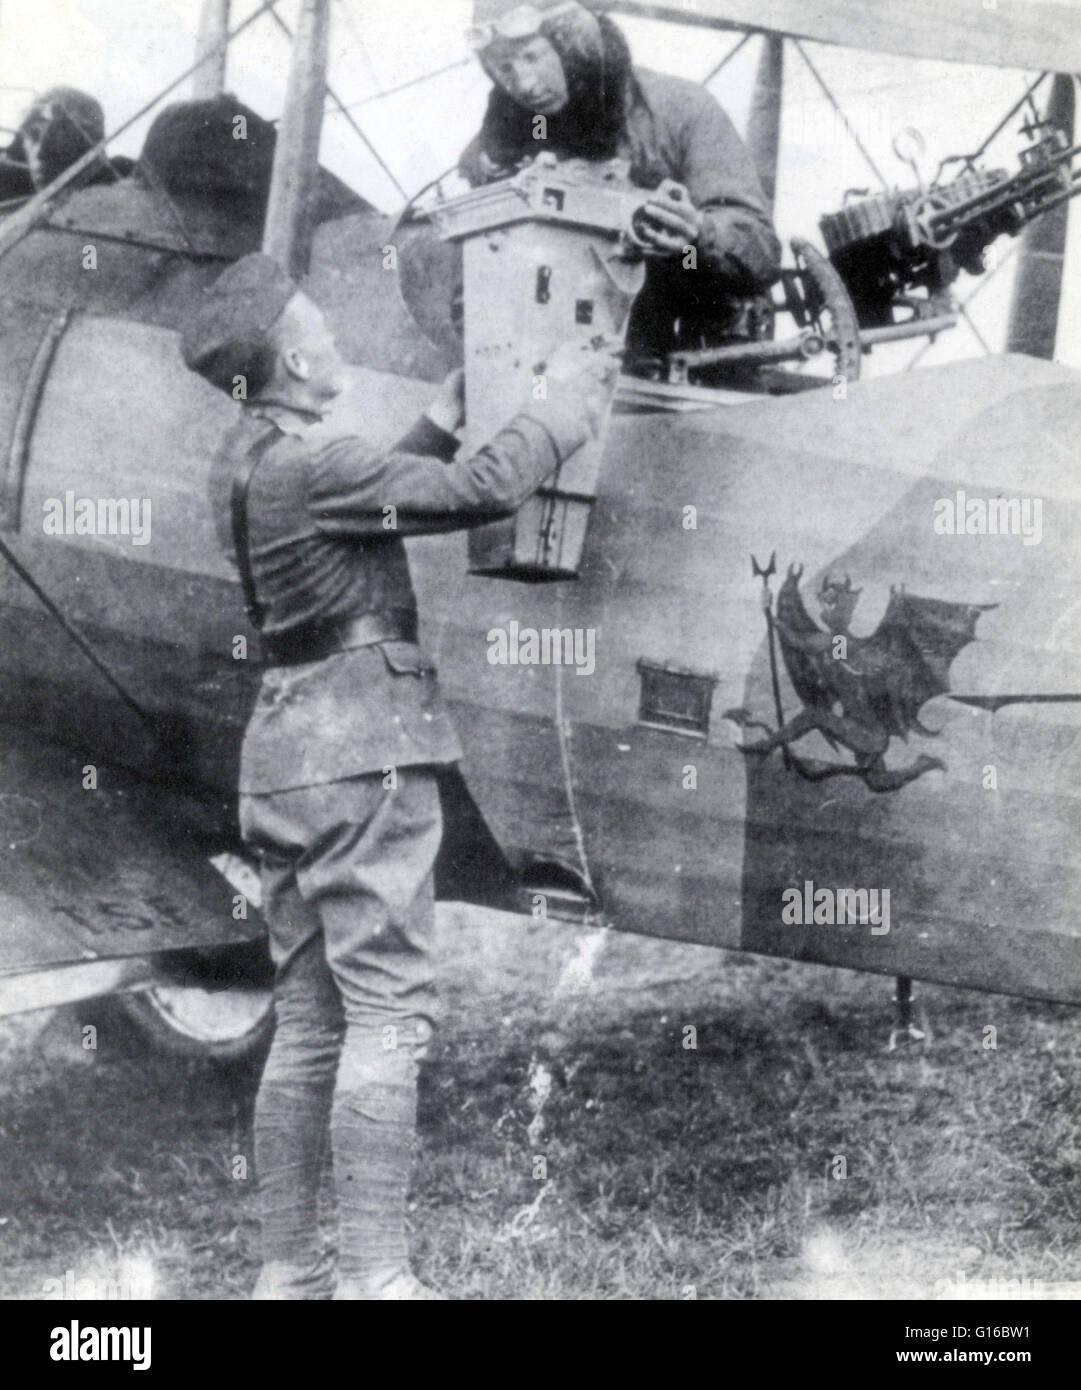 The use of aerial photography rapidly matured during WWI, as aircraft used for reconnaissance purposes were outfitted - Stock Image